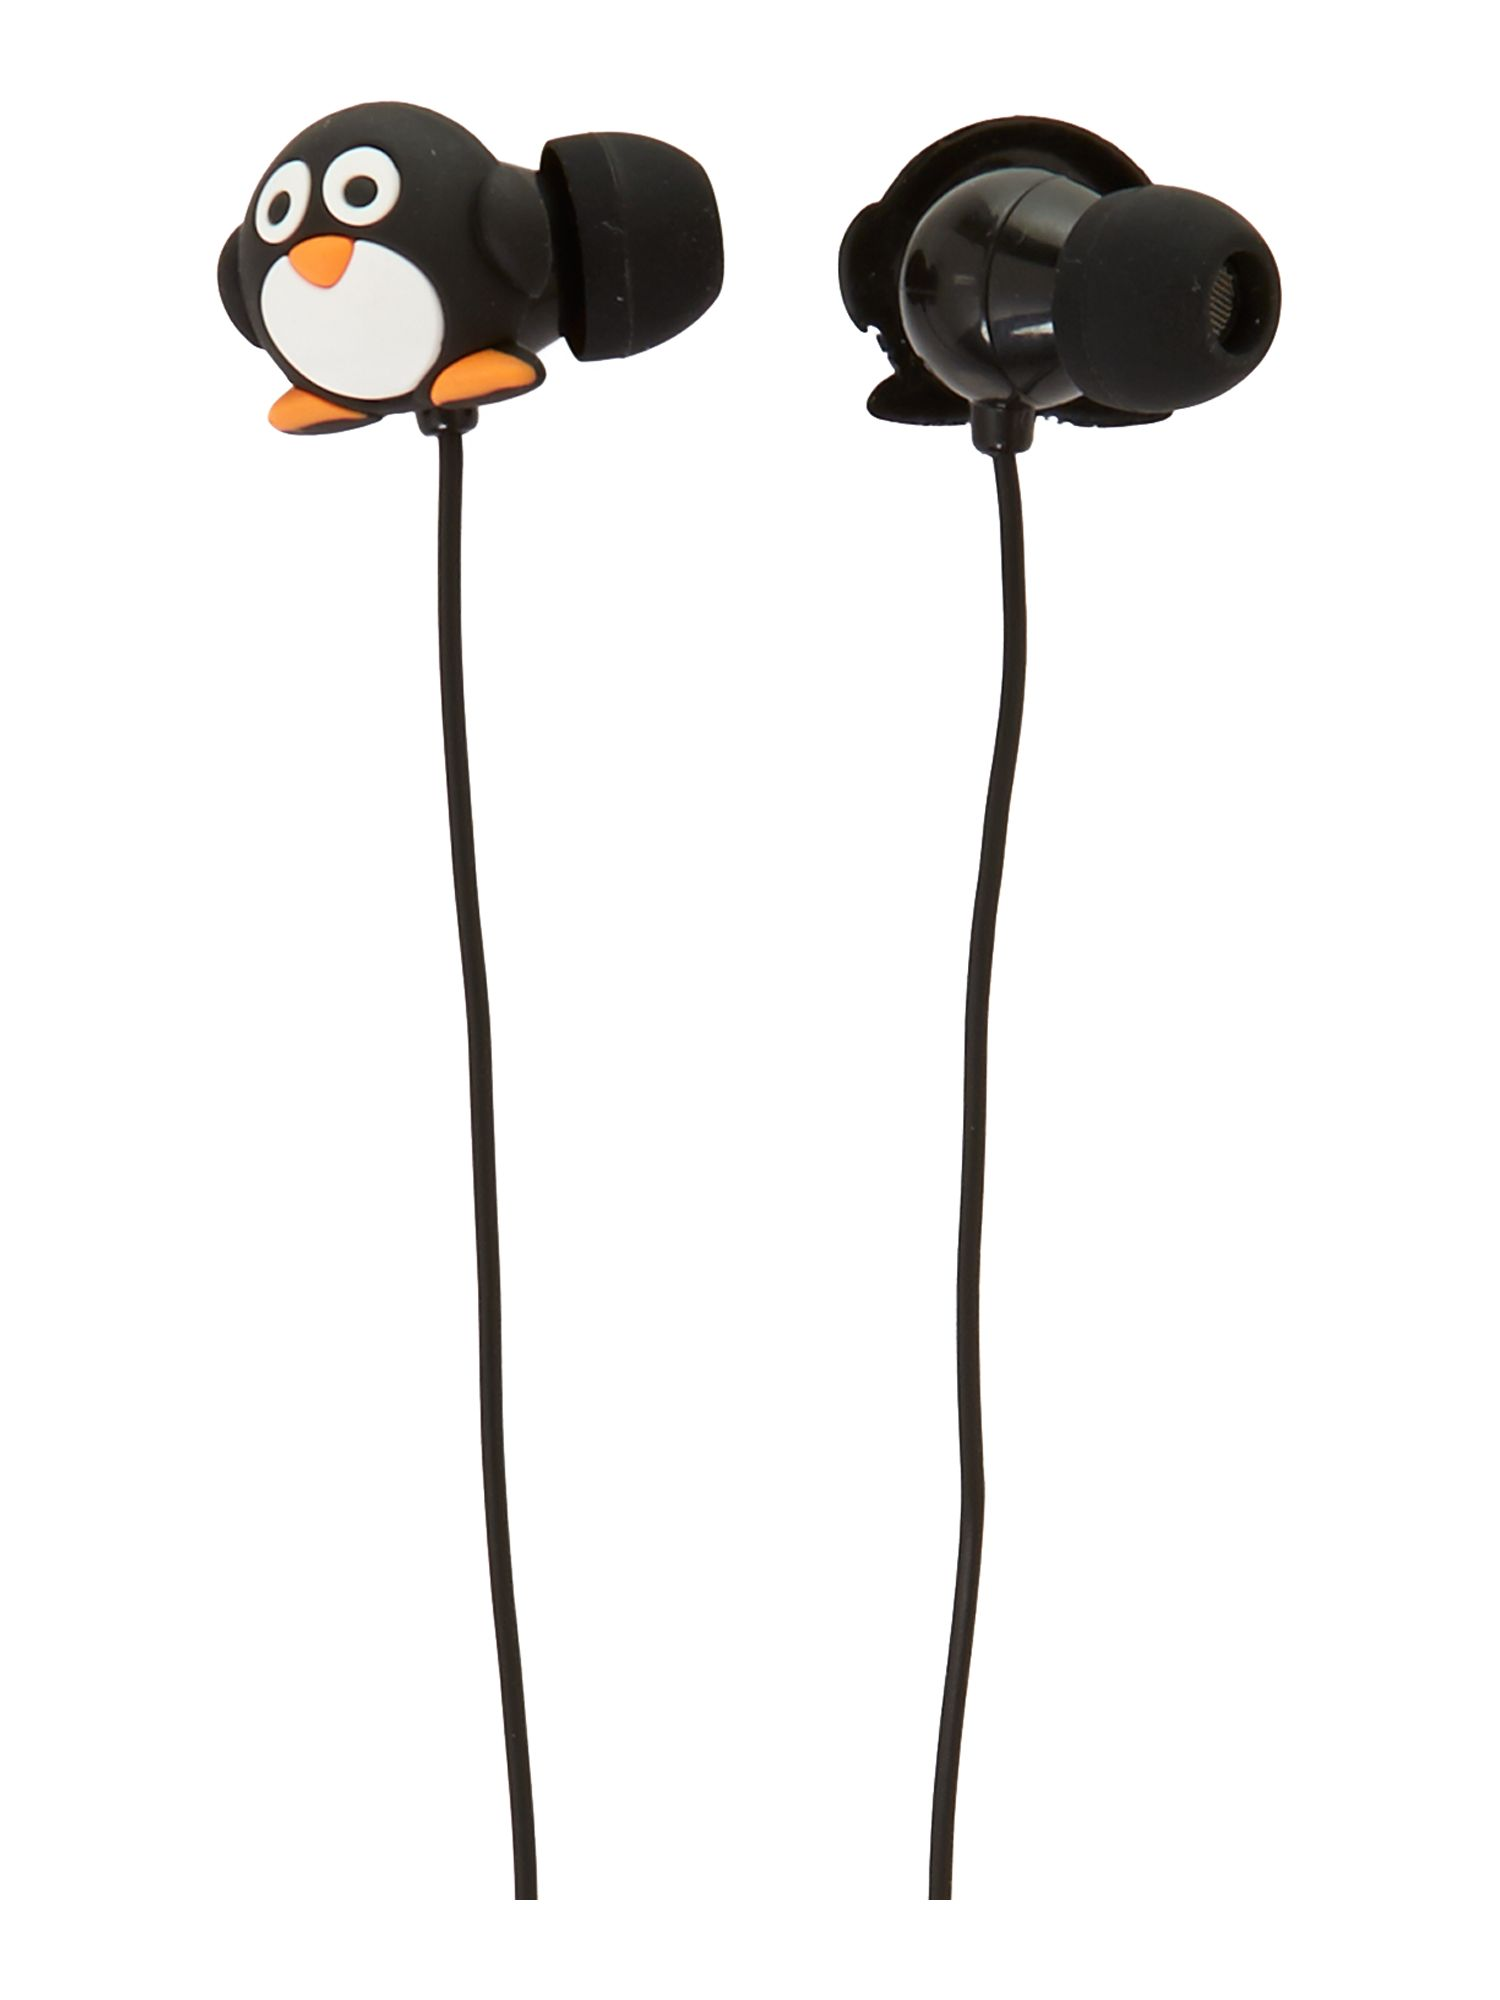 Penguin earbuds with in line mic